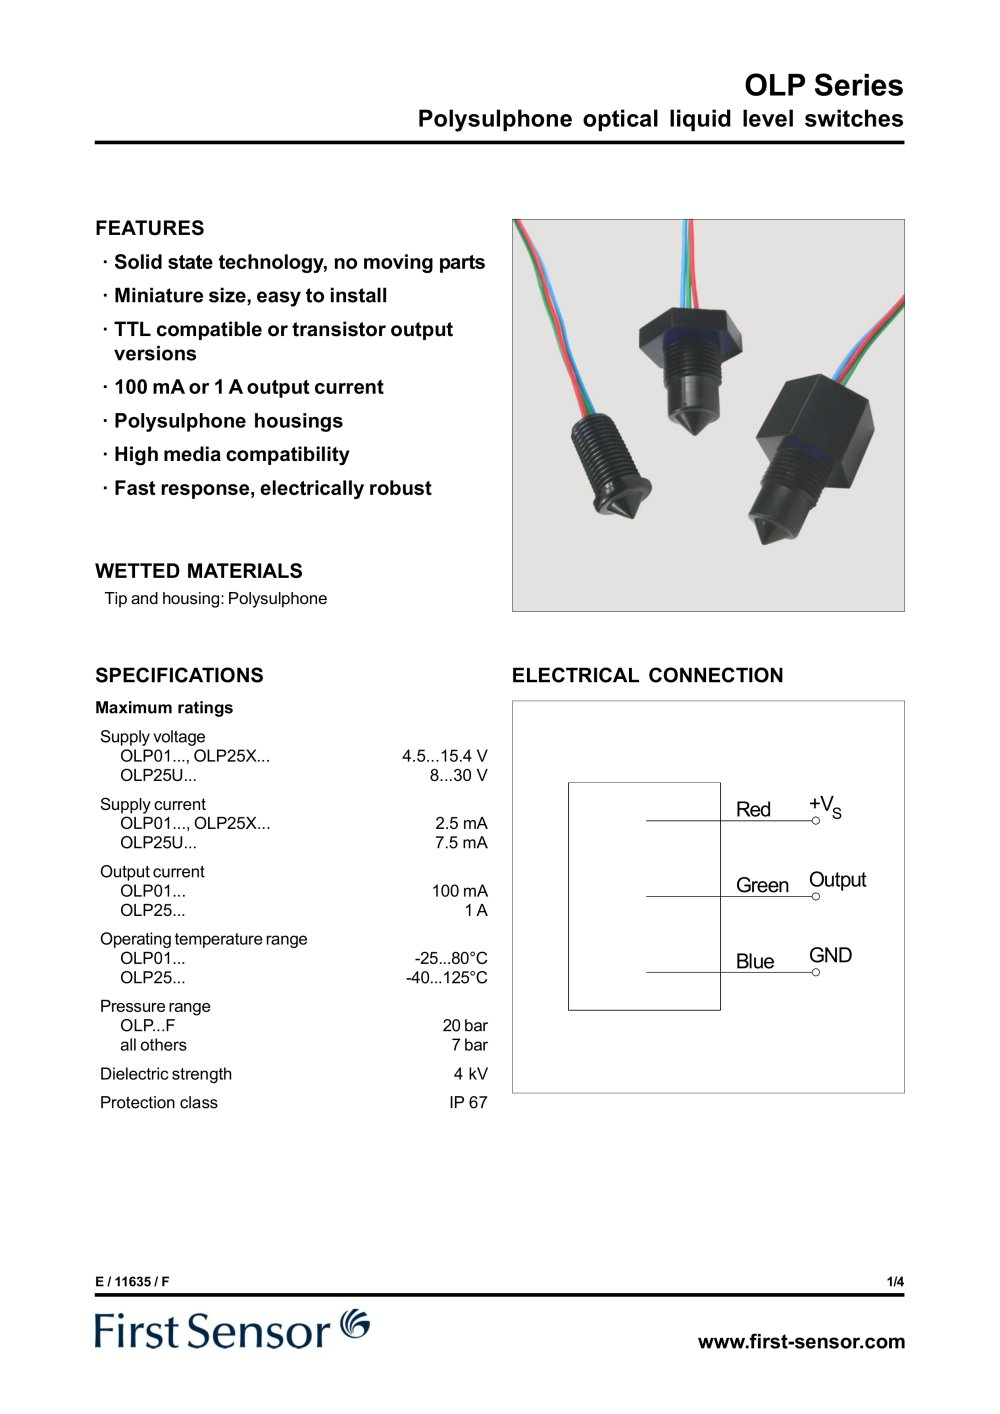 Olp Wiring Diagram Sample Silver Tone Schematic Electrical Diagrams Schematics Old Optical Liquid Level Sensor First